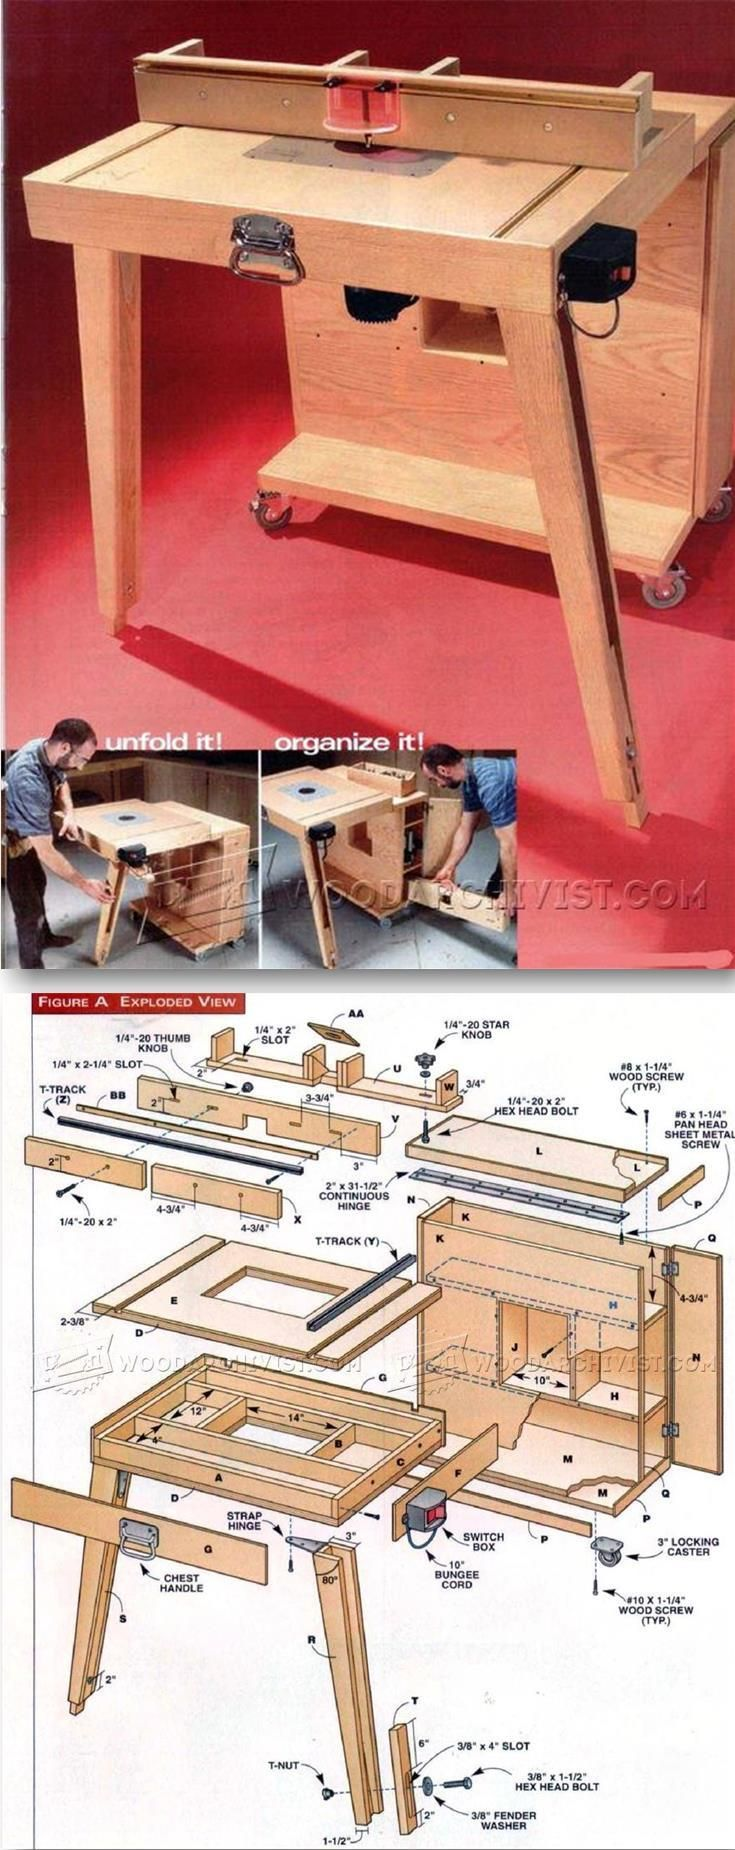 Mobile router table plans - Mobile Router Table Plans Router Tips Jigs And Fixtures Woodarchivist Com